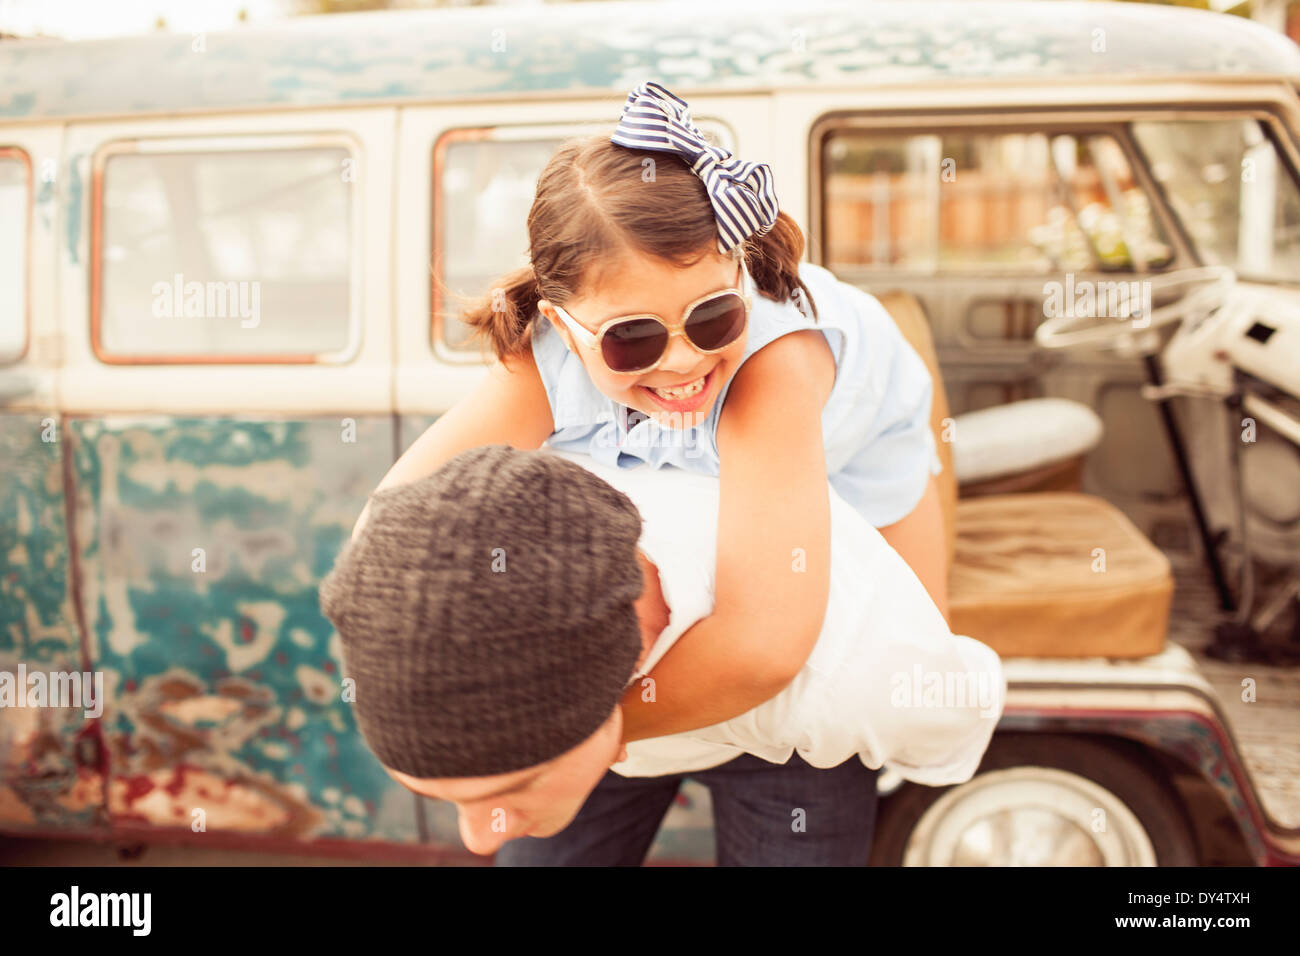 Father giving daughter piggyback - Stock Image